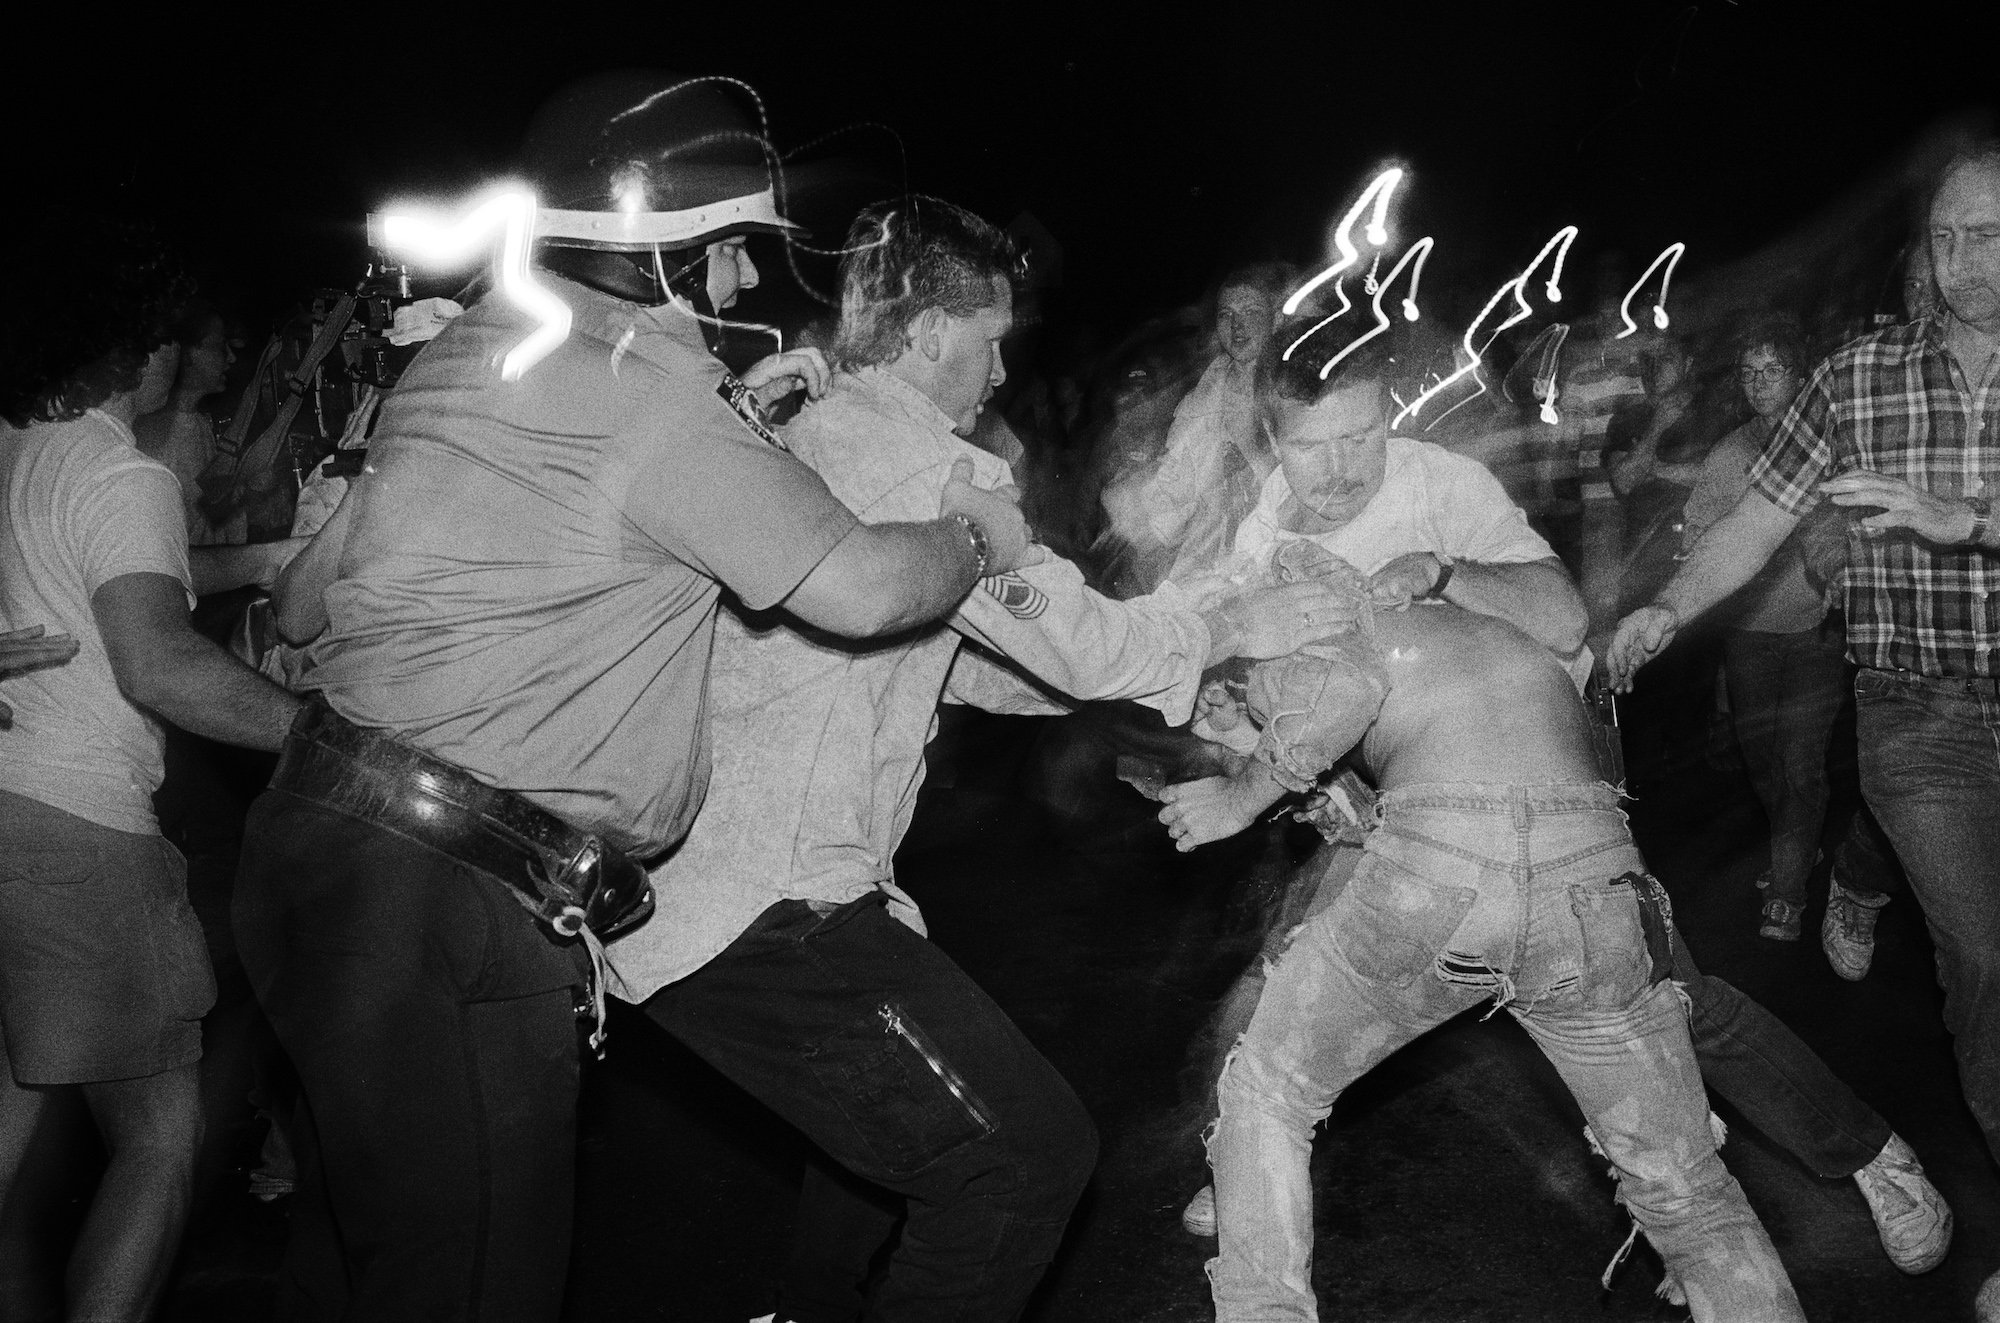 This photographer shot the radical protests that inspired Occupy Wall Street:  https://t.co/uooH37wooB https://t.co/1EJnTjOcwB